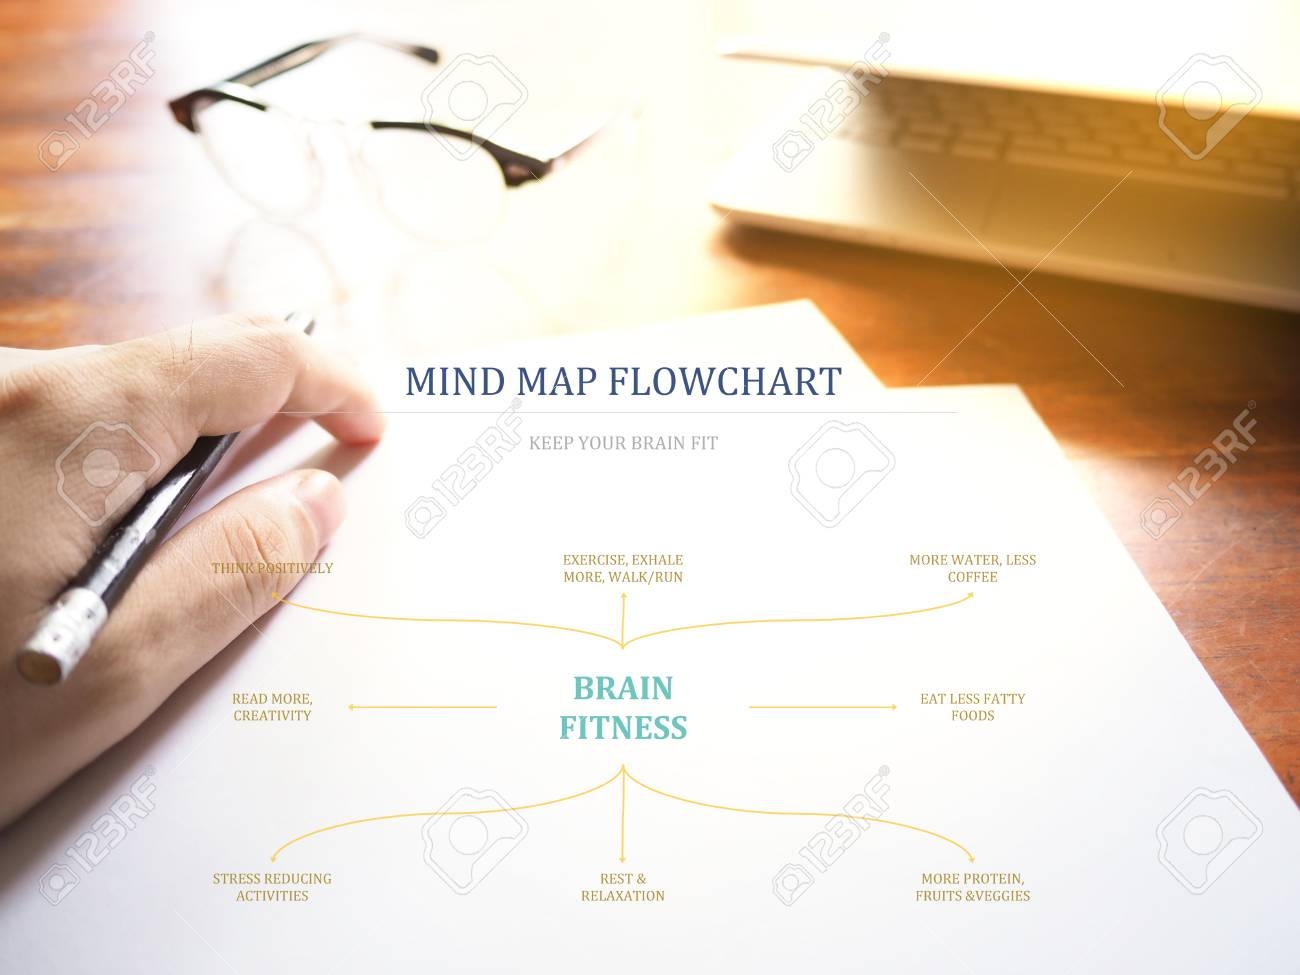 Brain fitness mind map flow chart on workplace background keep brain fitness mind map flow chart on workplace background keep your brain fit concept stock nvjuhfo Images